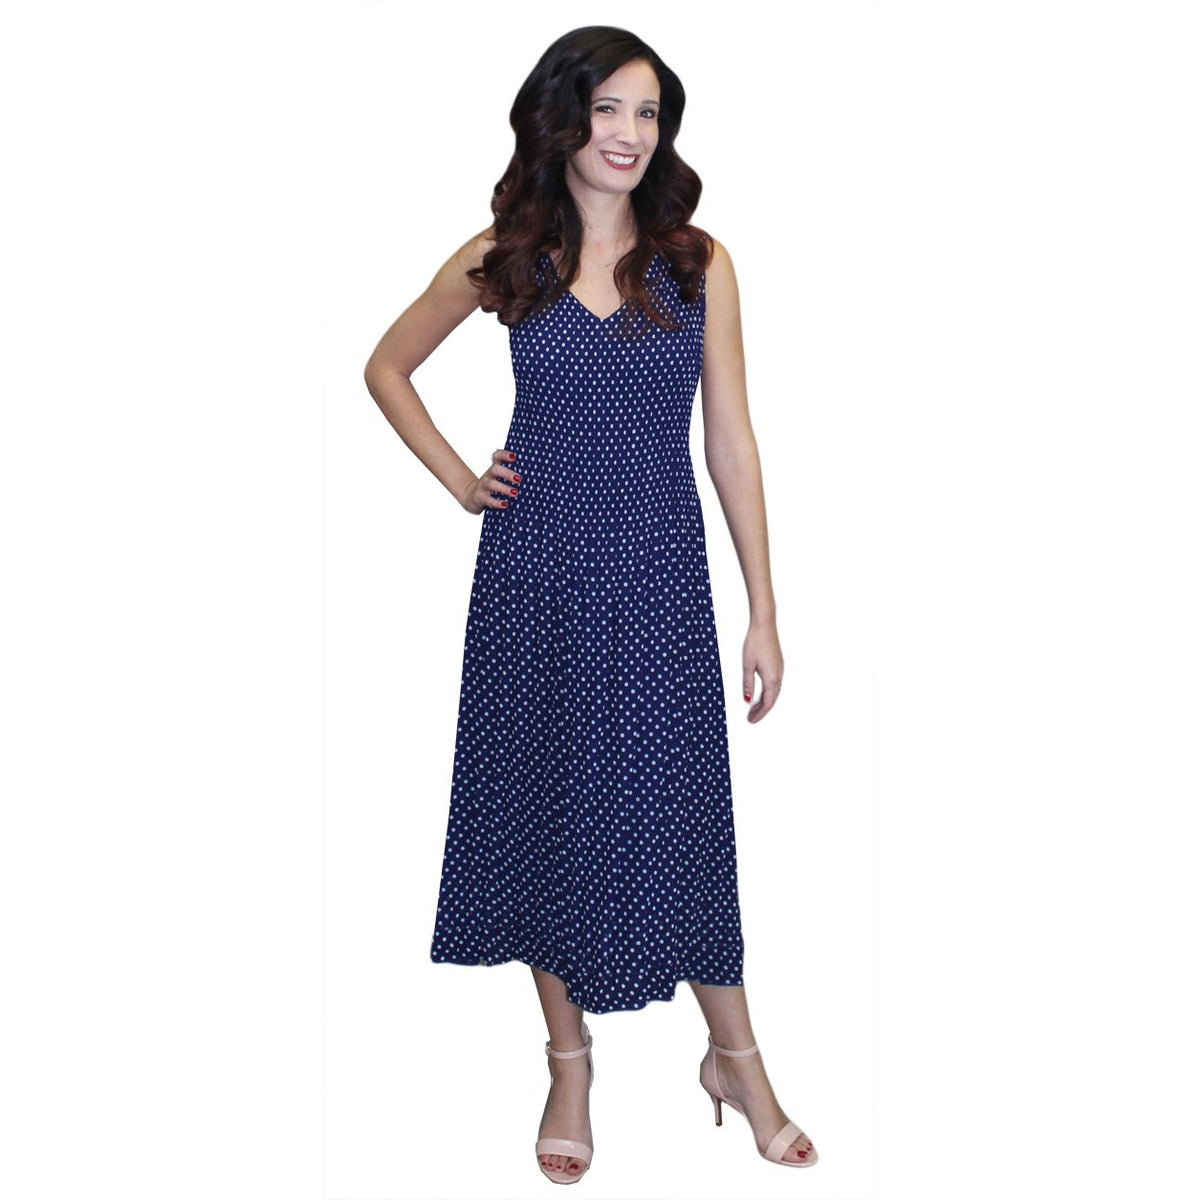 Dot Print Crinkle Dress - Navy